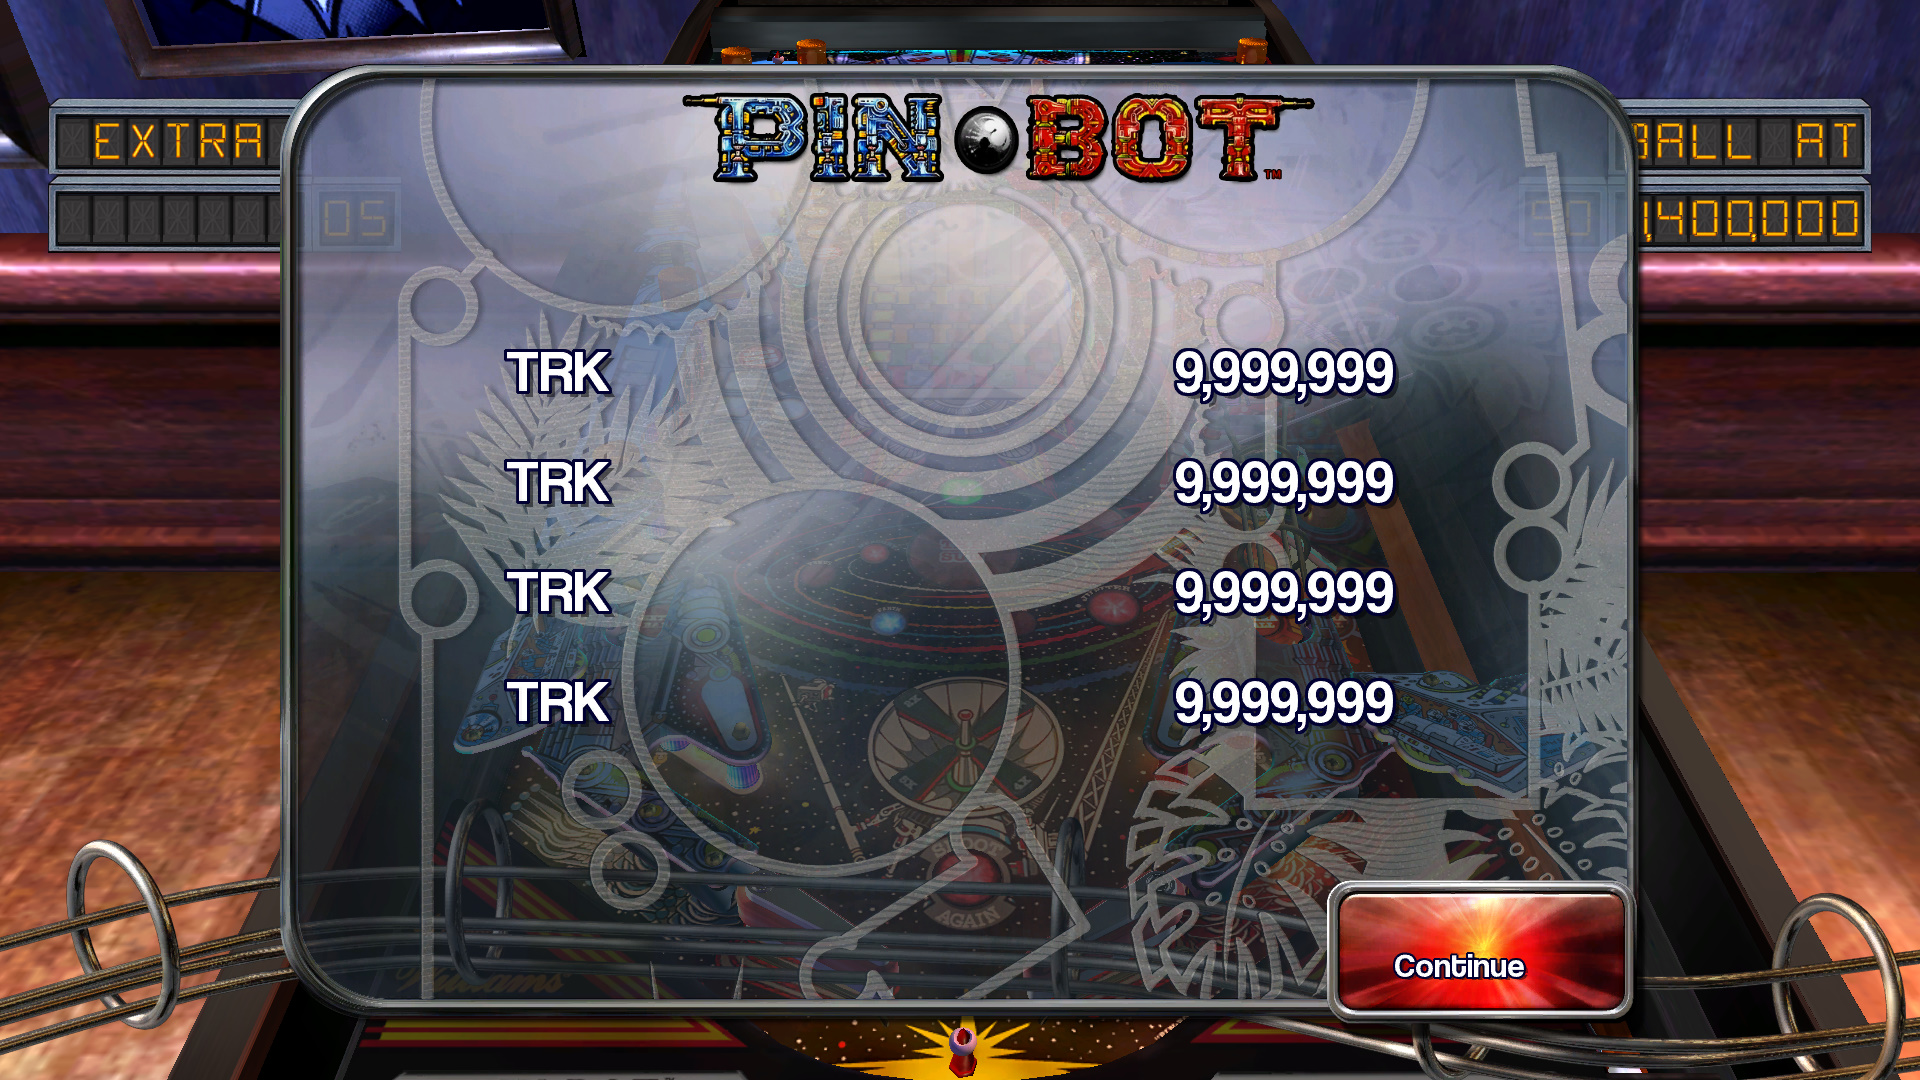 TheTrickster: Pinball Arcade: Pin*Bot (PC) 18,250,550 points on 2015-10-02 09:36:43